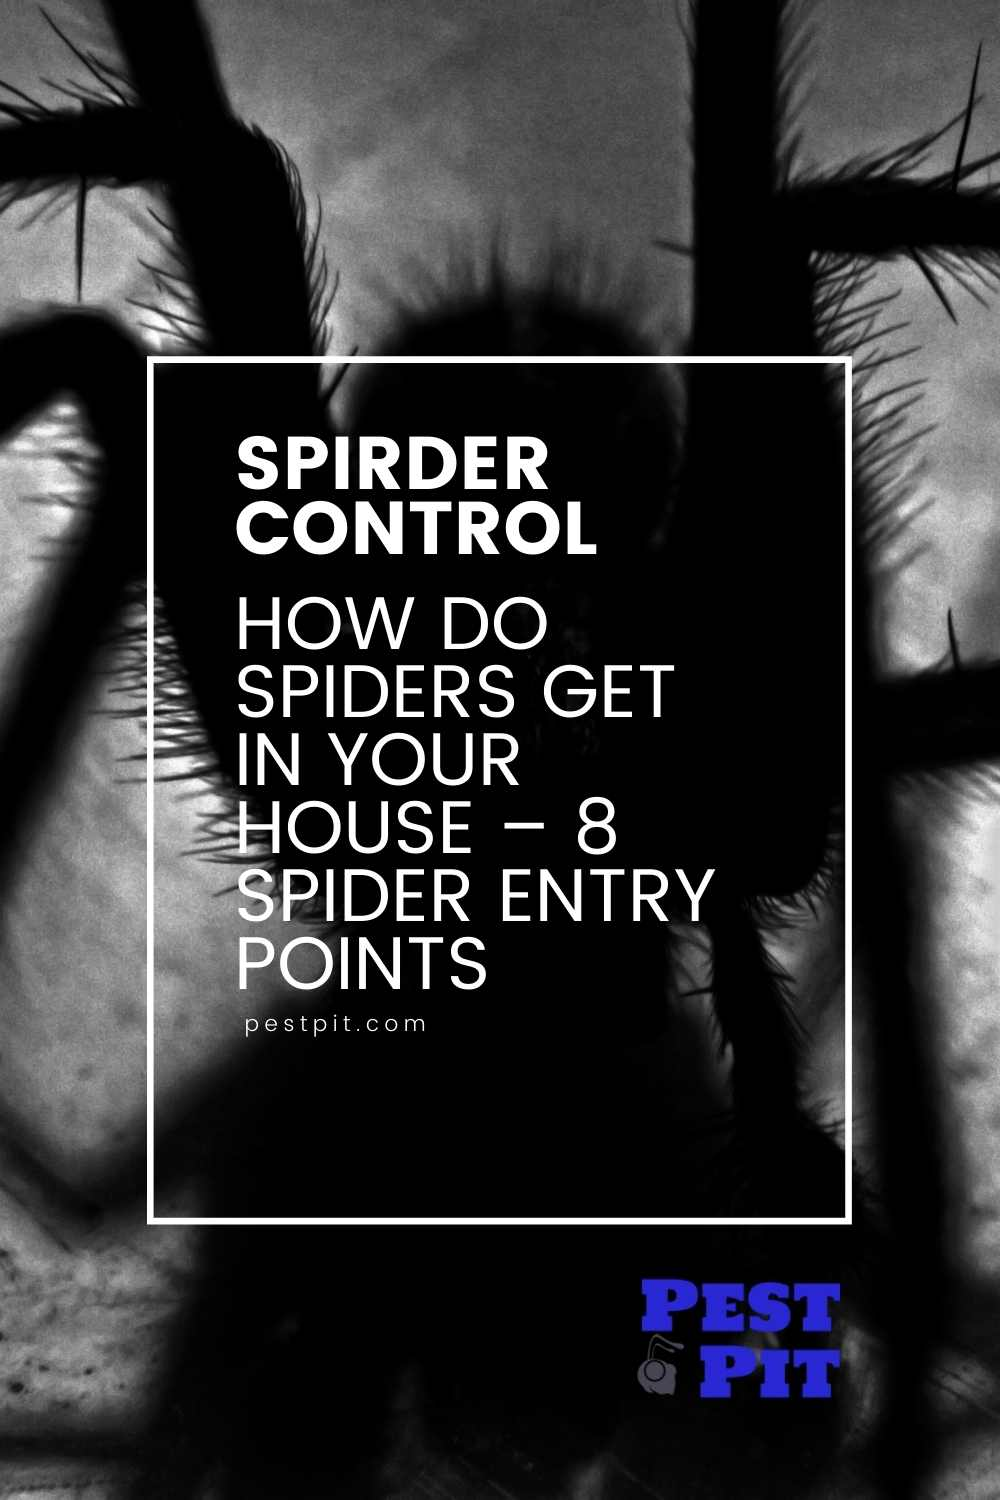 How Do Spiders Get In Your House – 8 Spider Entry Points